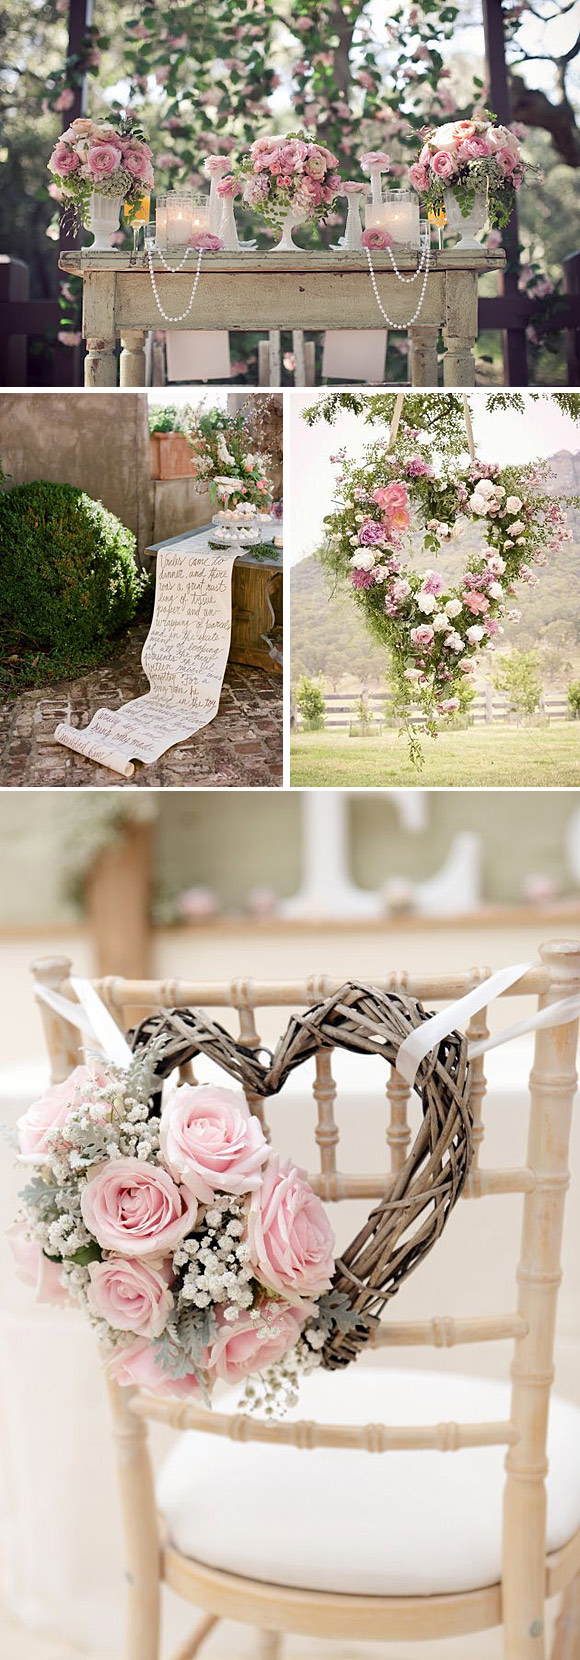 Decoracion Romantica Para Bodas ~    en este post os damos m?s ideas para decorar con rosas